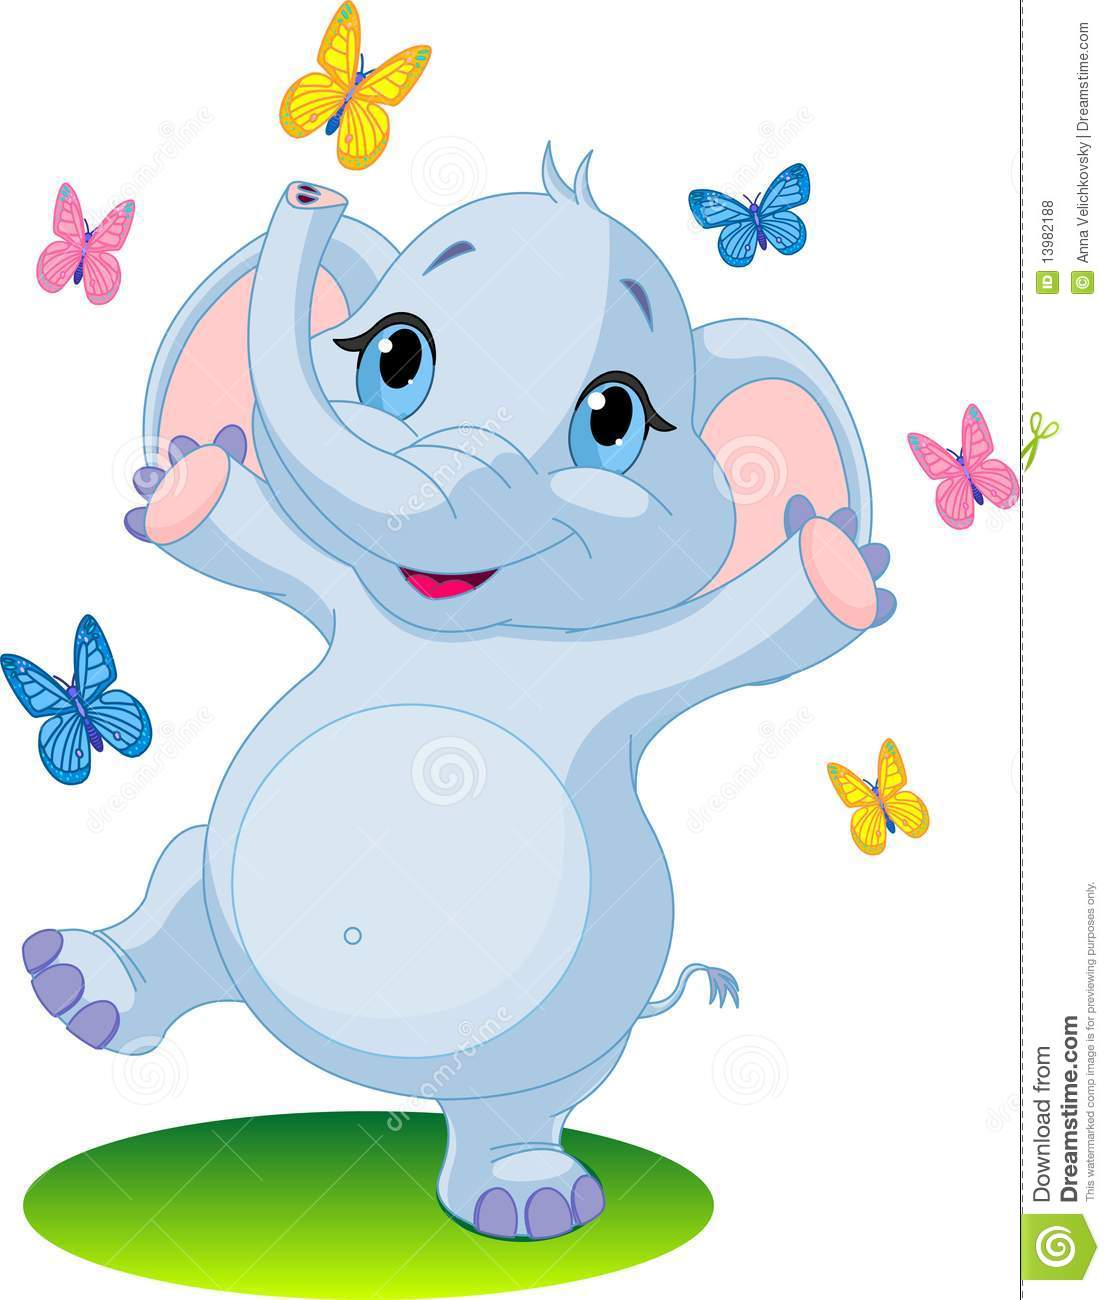 Dancing Babies Cute: Baby Elephant Dancing With Butterflies Stock Illustration